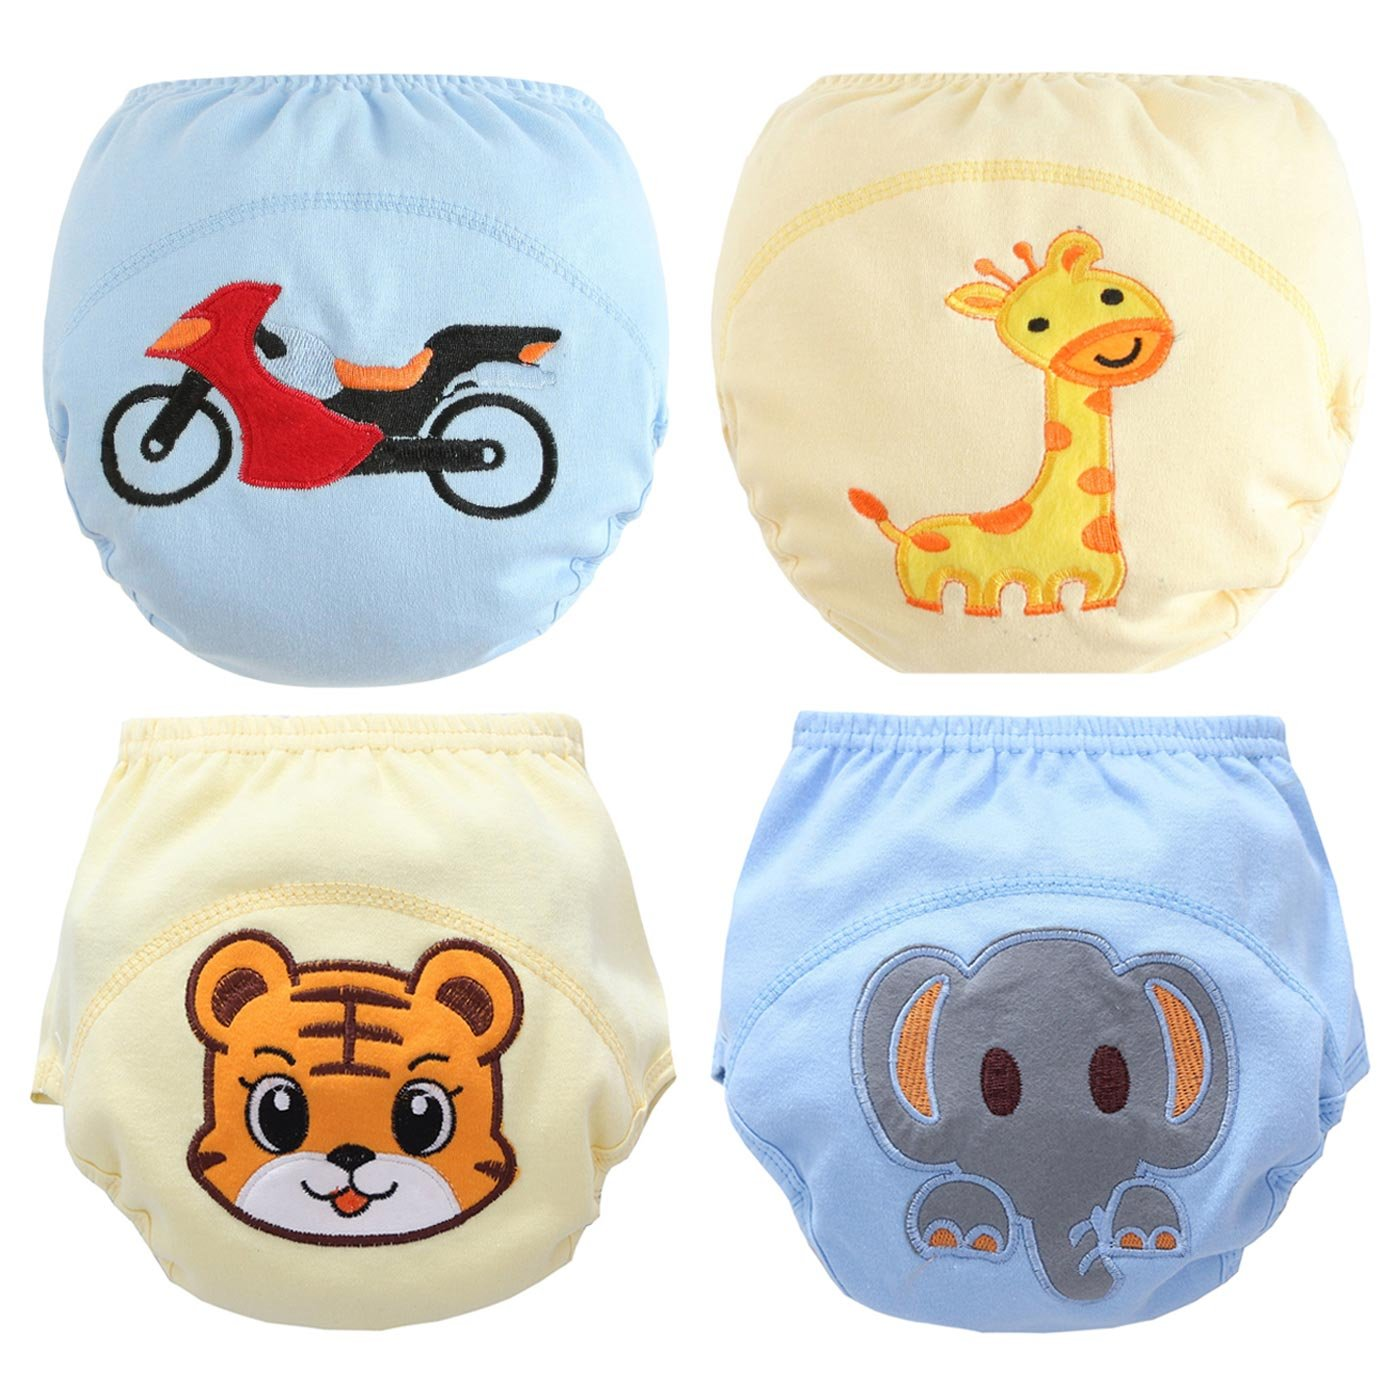 Toddler Soft Toilet Training Pants Baby Boy Cute Elephant Diaper Underwear 4 Pack HANIBEIWA JWBK0469